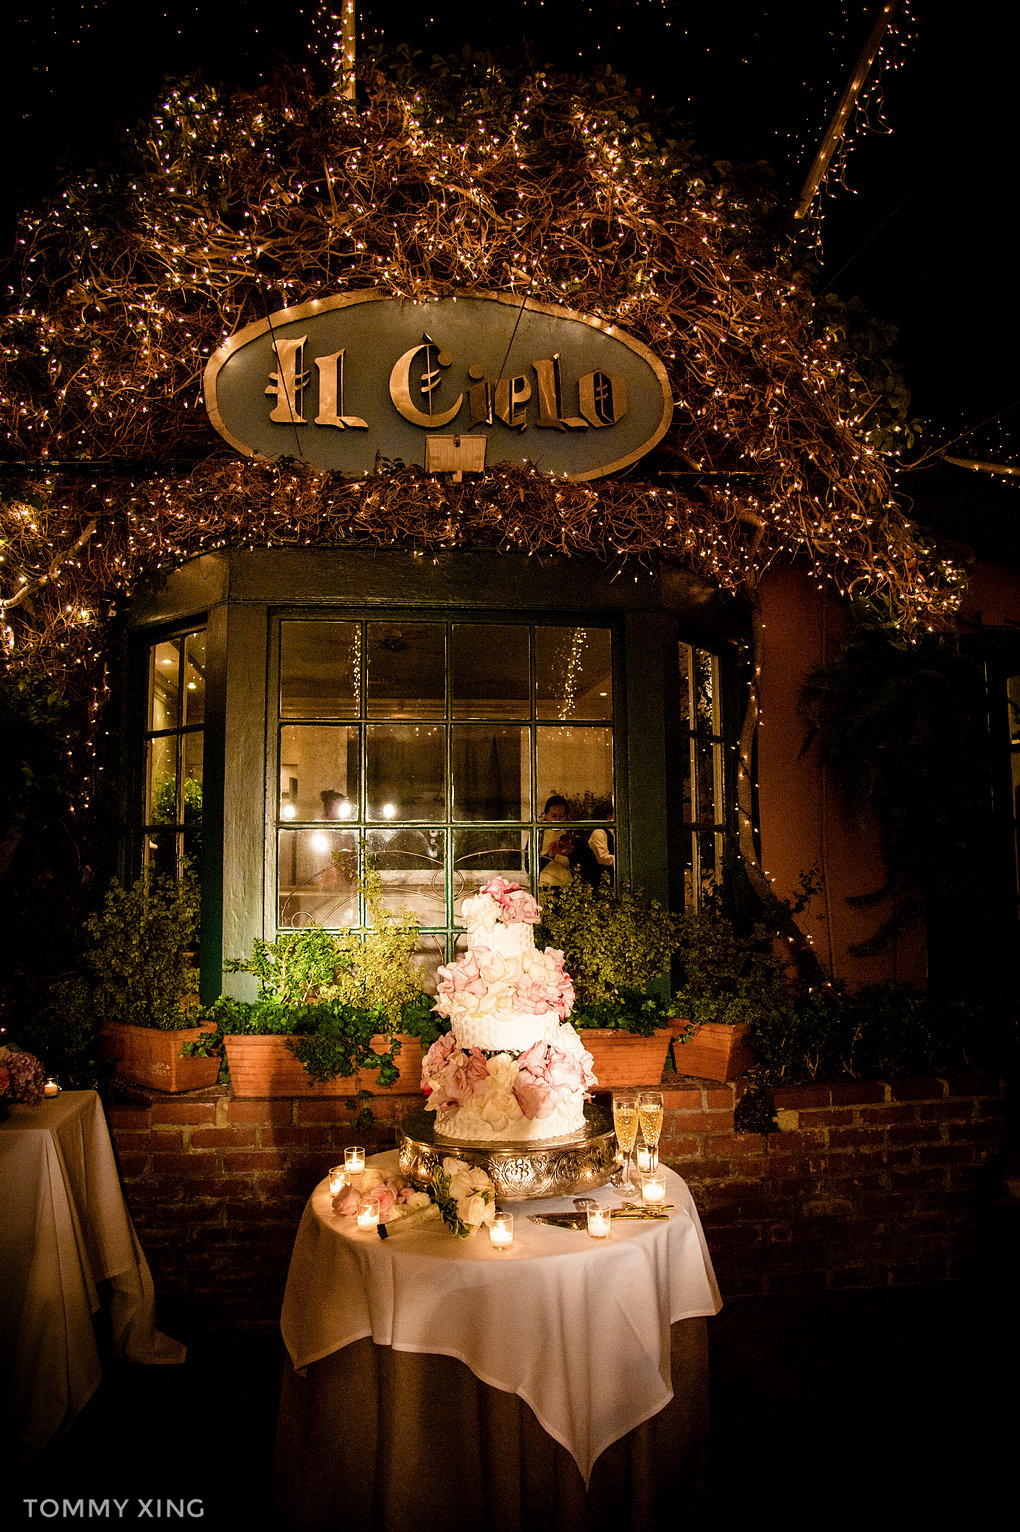 IL CIELO WEDDING Beverly Hills by Tommy Xing Photography 172.jpg